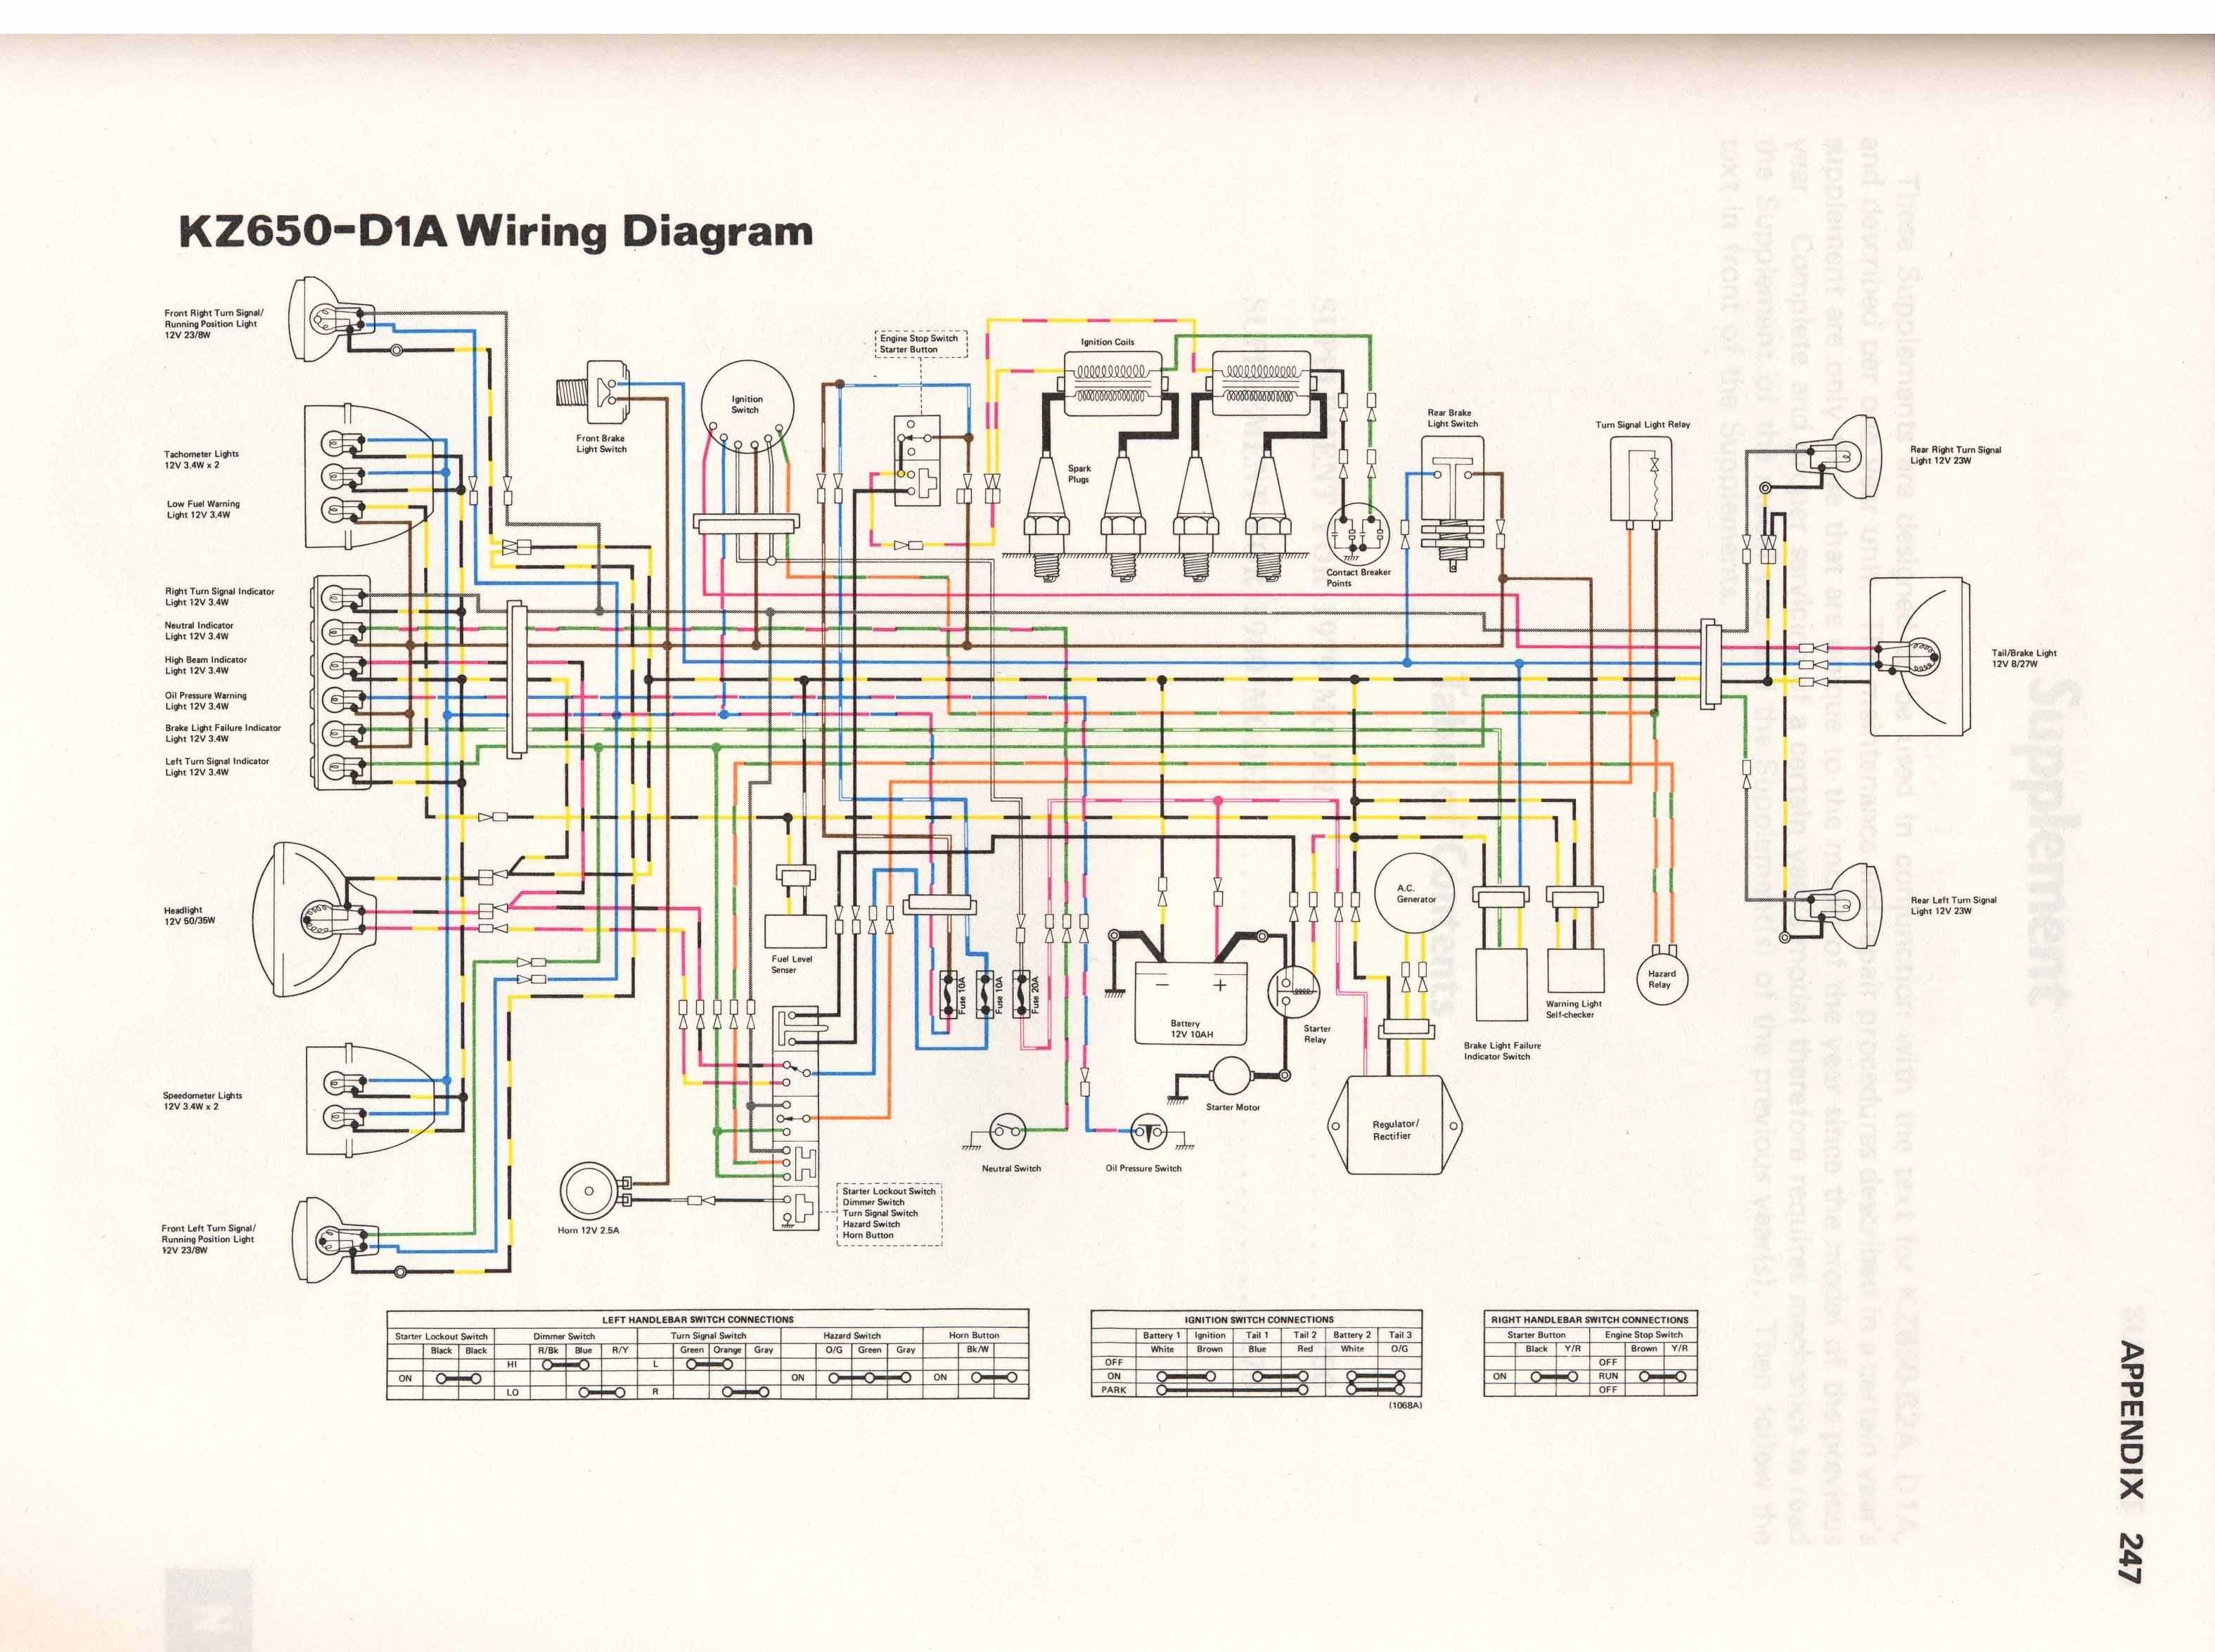 Honda Ca175 Wiring Diagram Trusted Diagrams C100 Kawasaki Kz750 Schematic